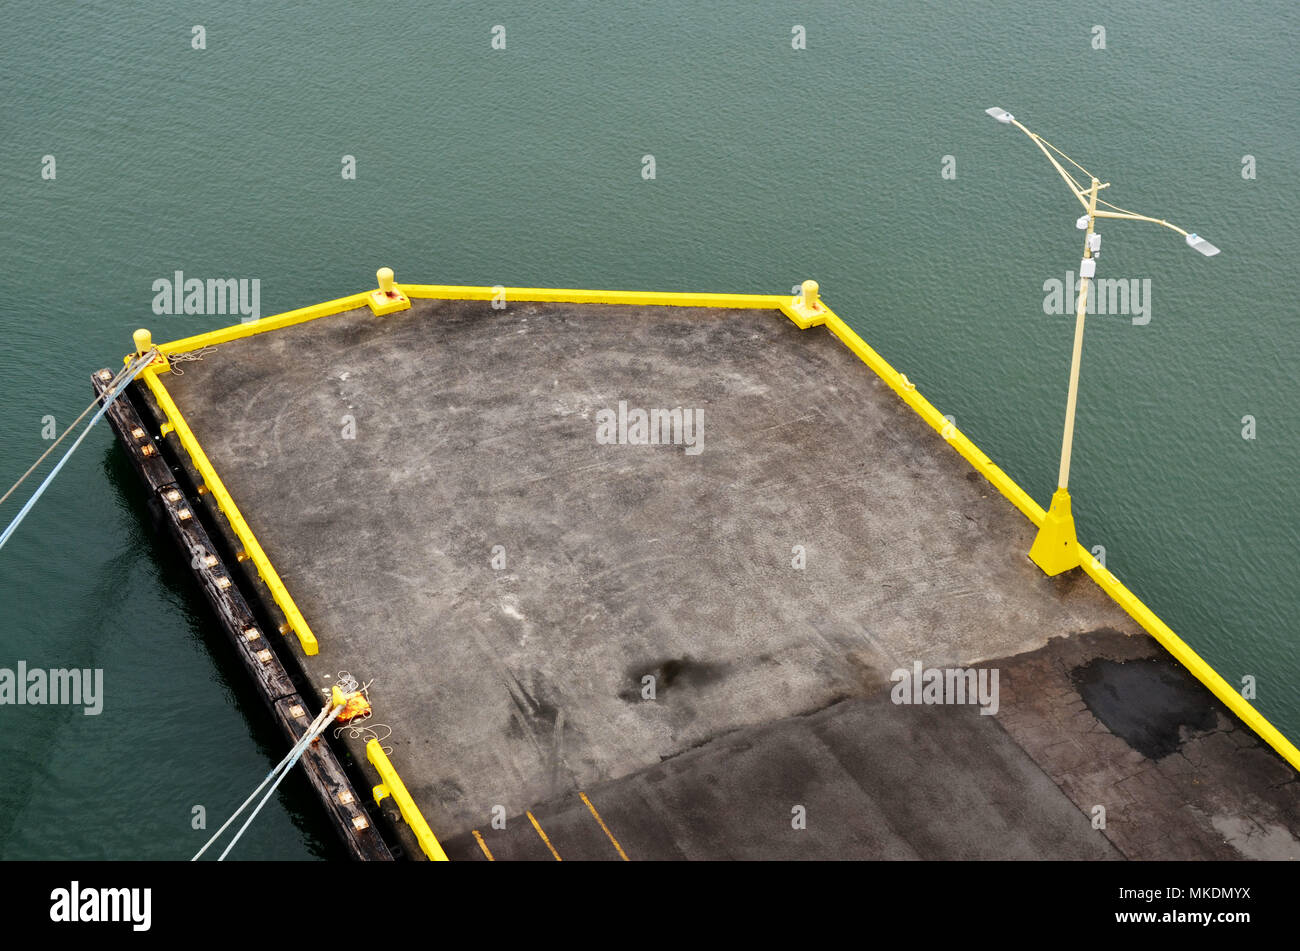 End of dock from above - Stock Image